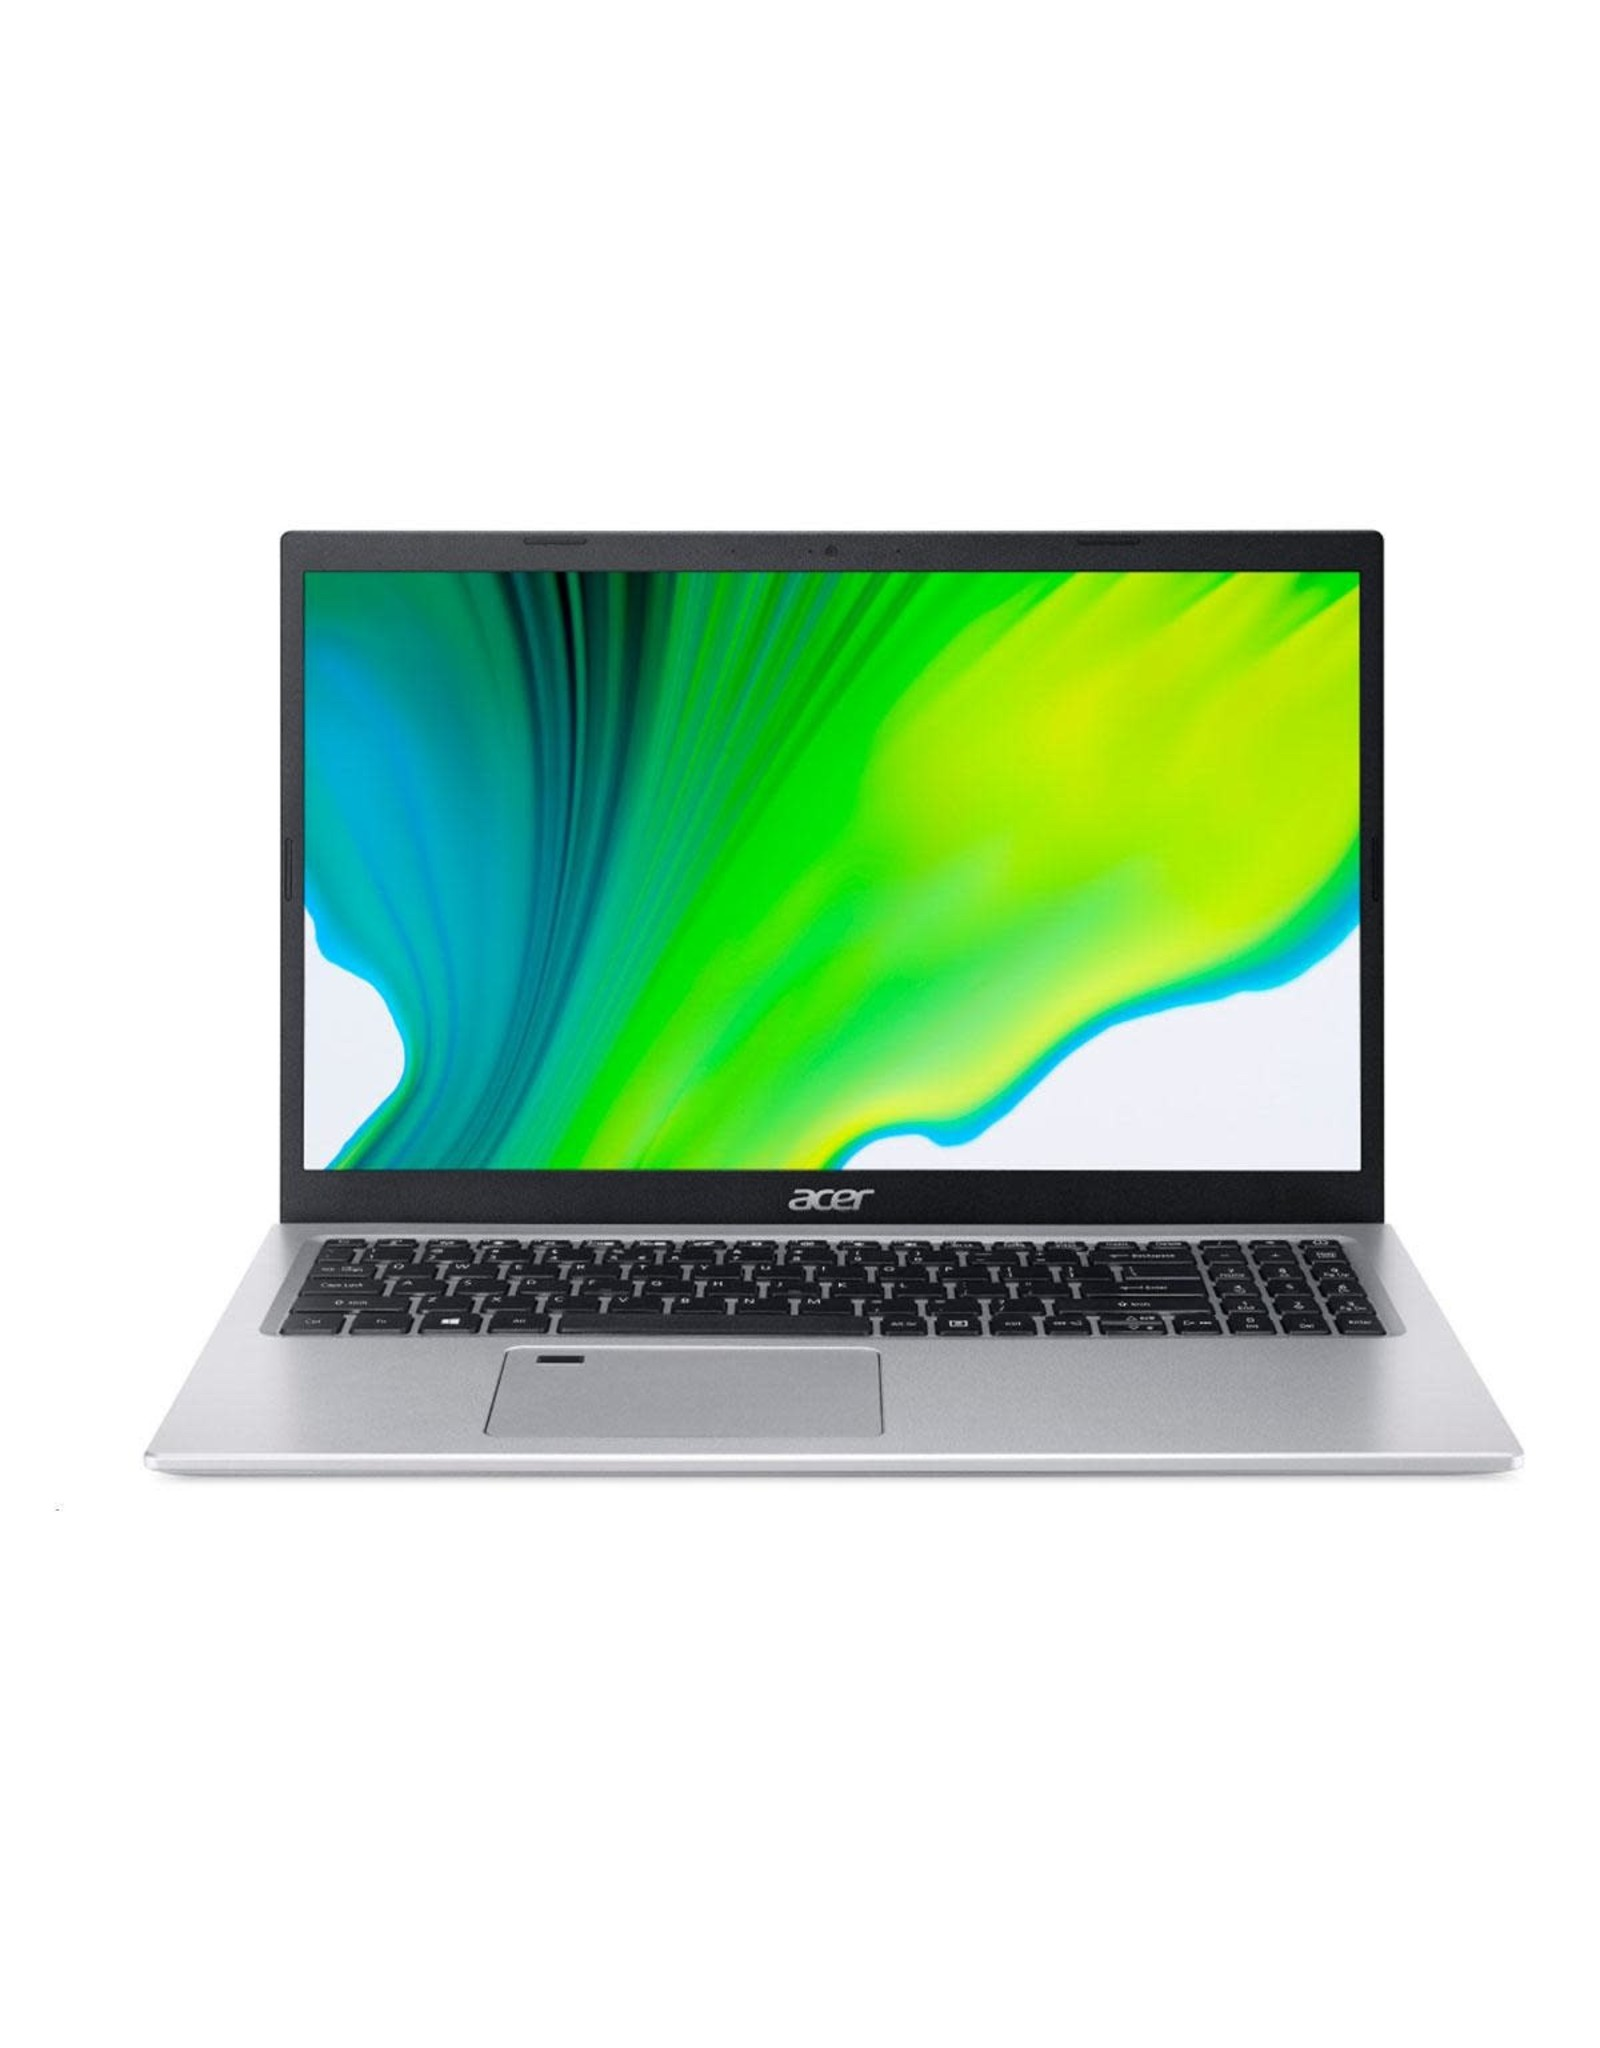 Acer Laptop - Acer Aspire 5 Slim - 15.6in - Core i5 - 8 GB DDR4 - 512GB PCIe SSD - Windows 10